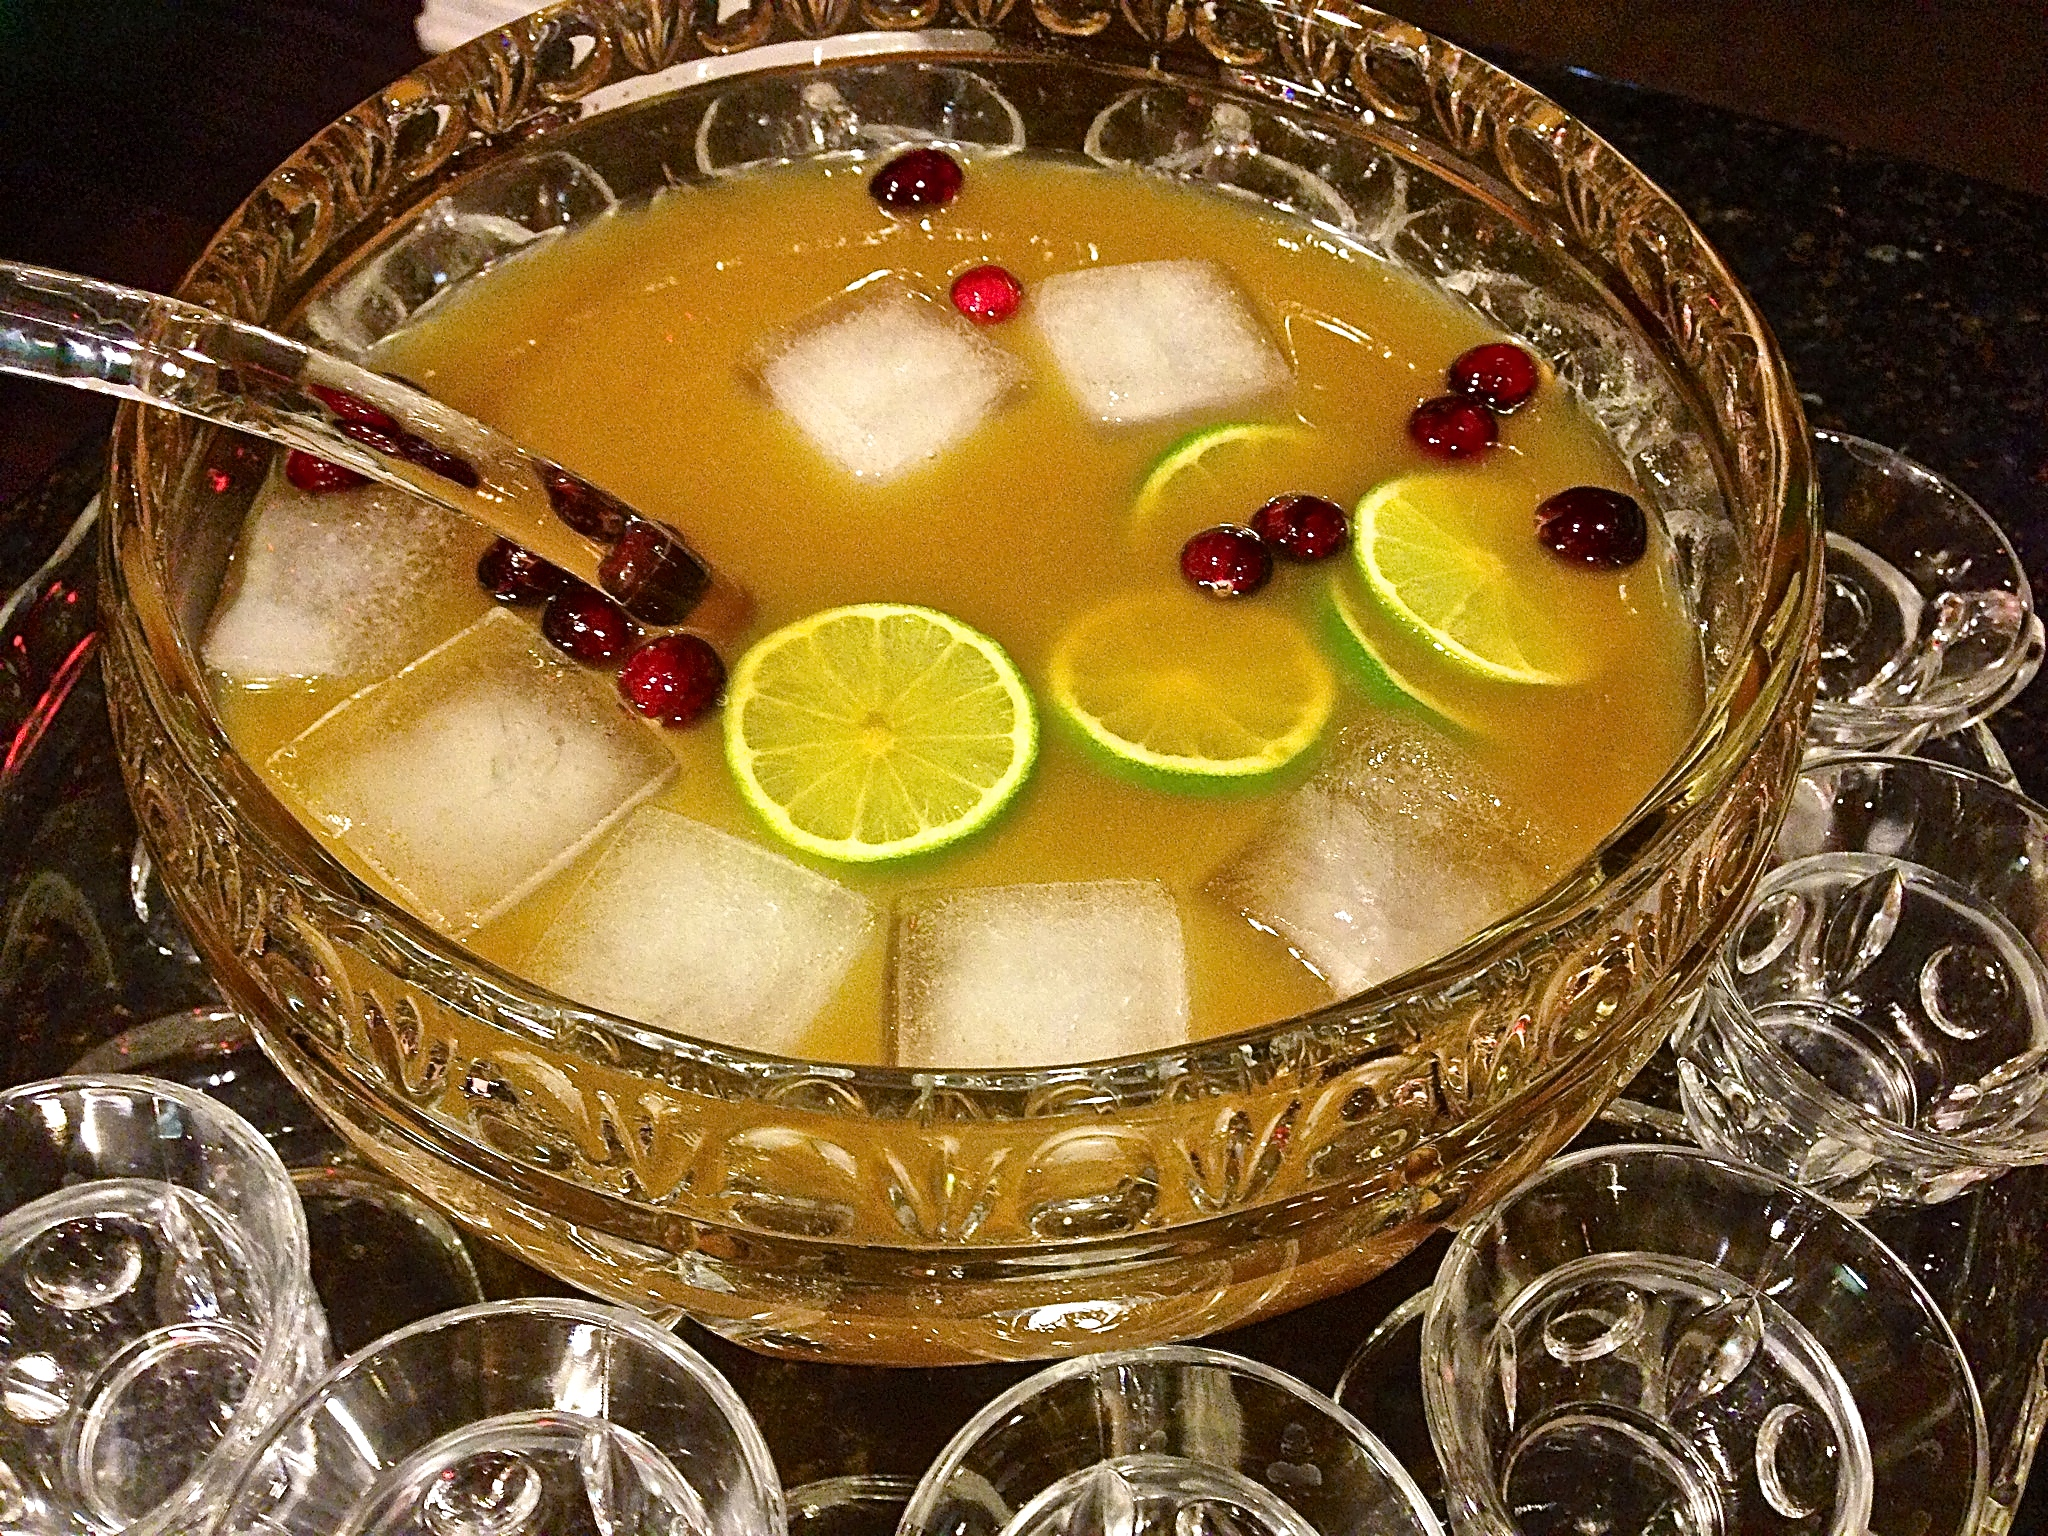 A festive punch bowl filled with rum, spices and fresh juices always makes the holidays bright.